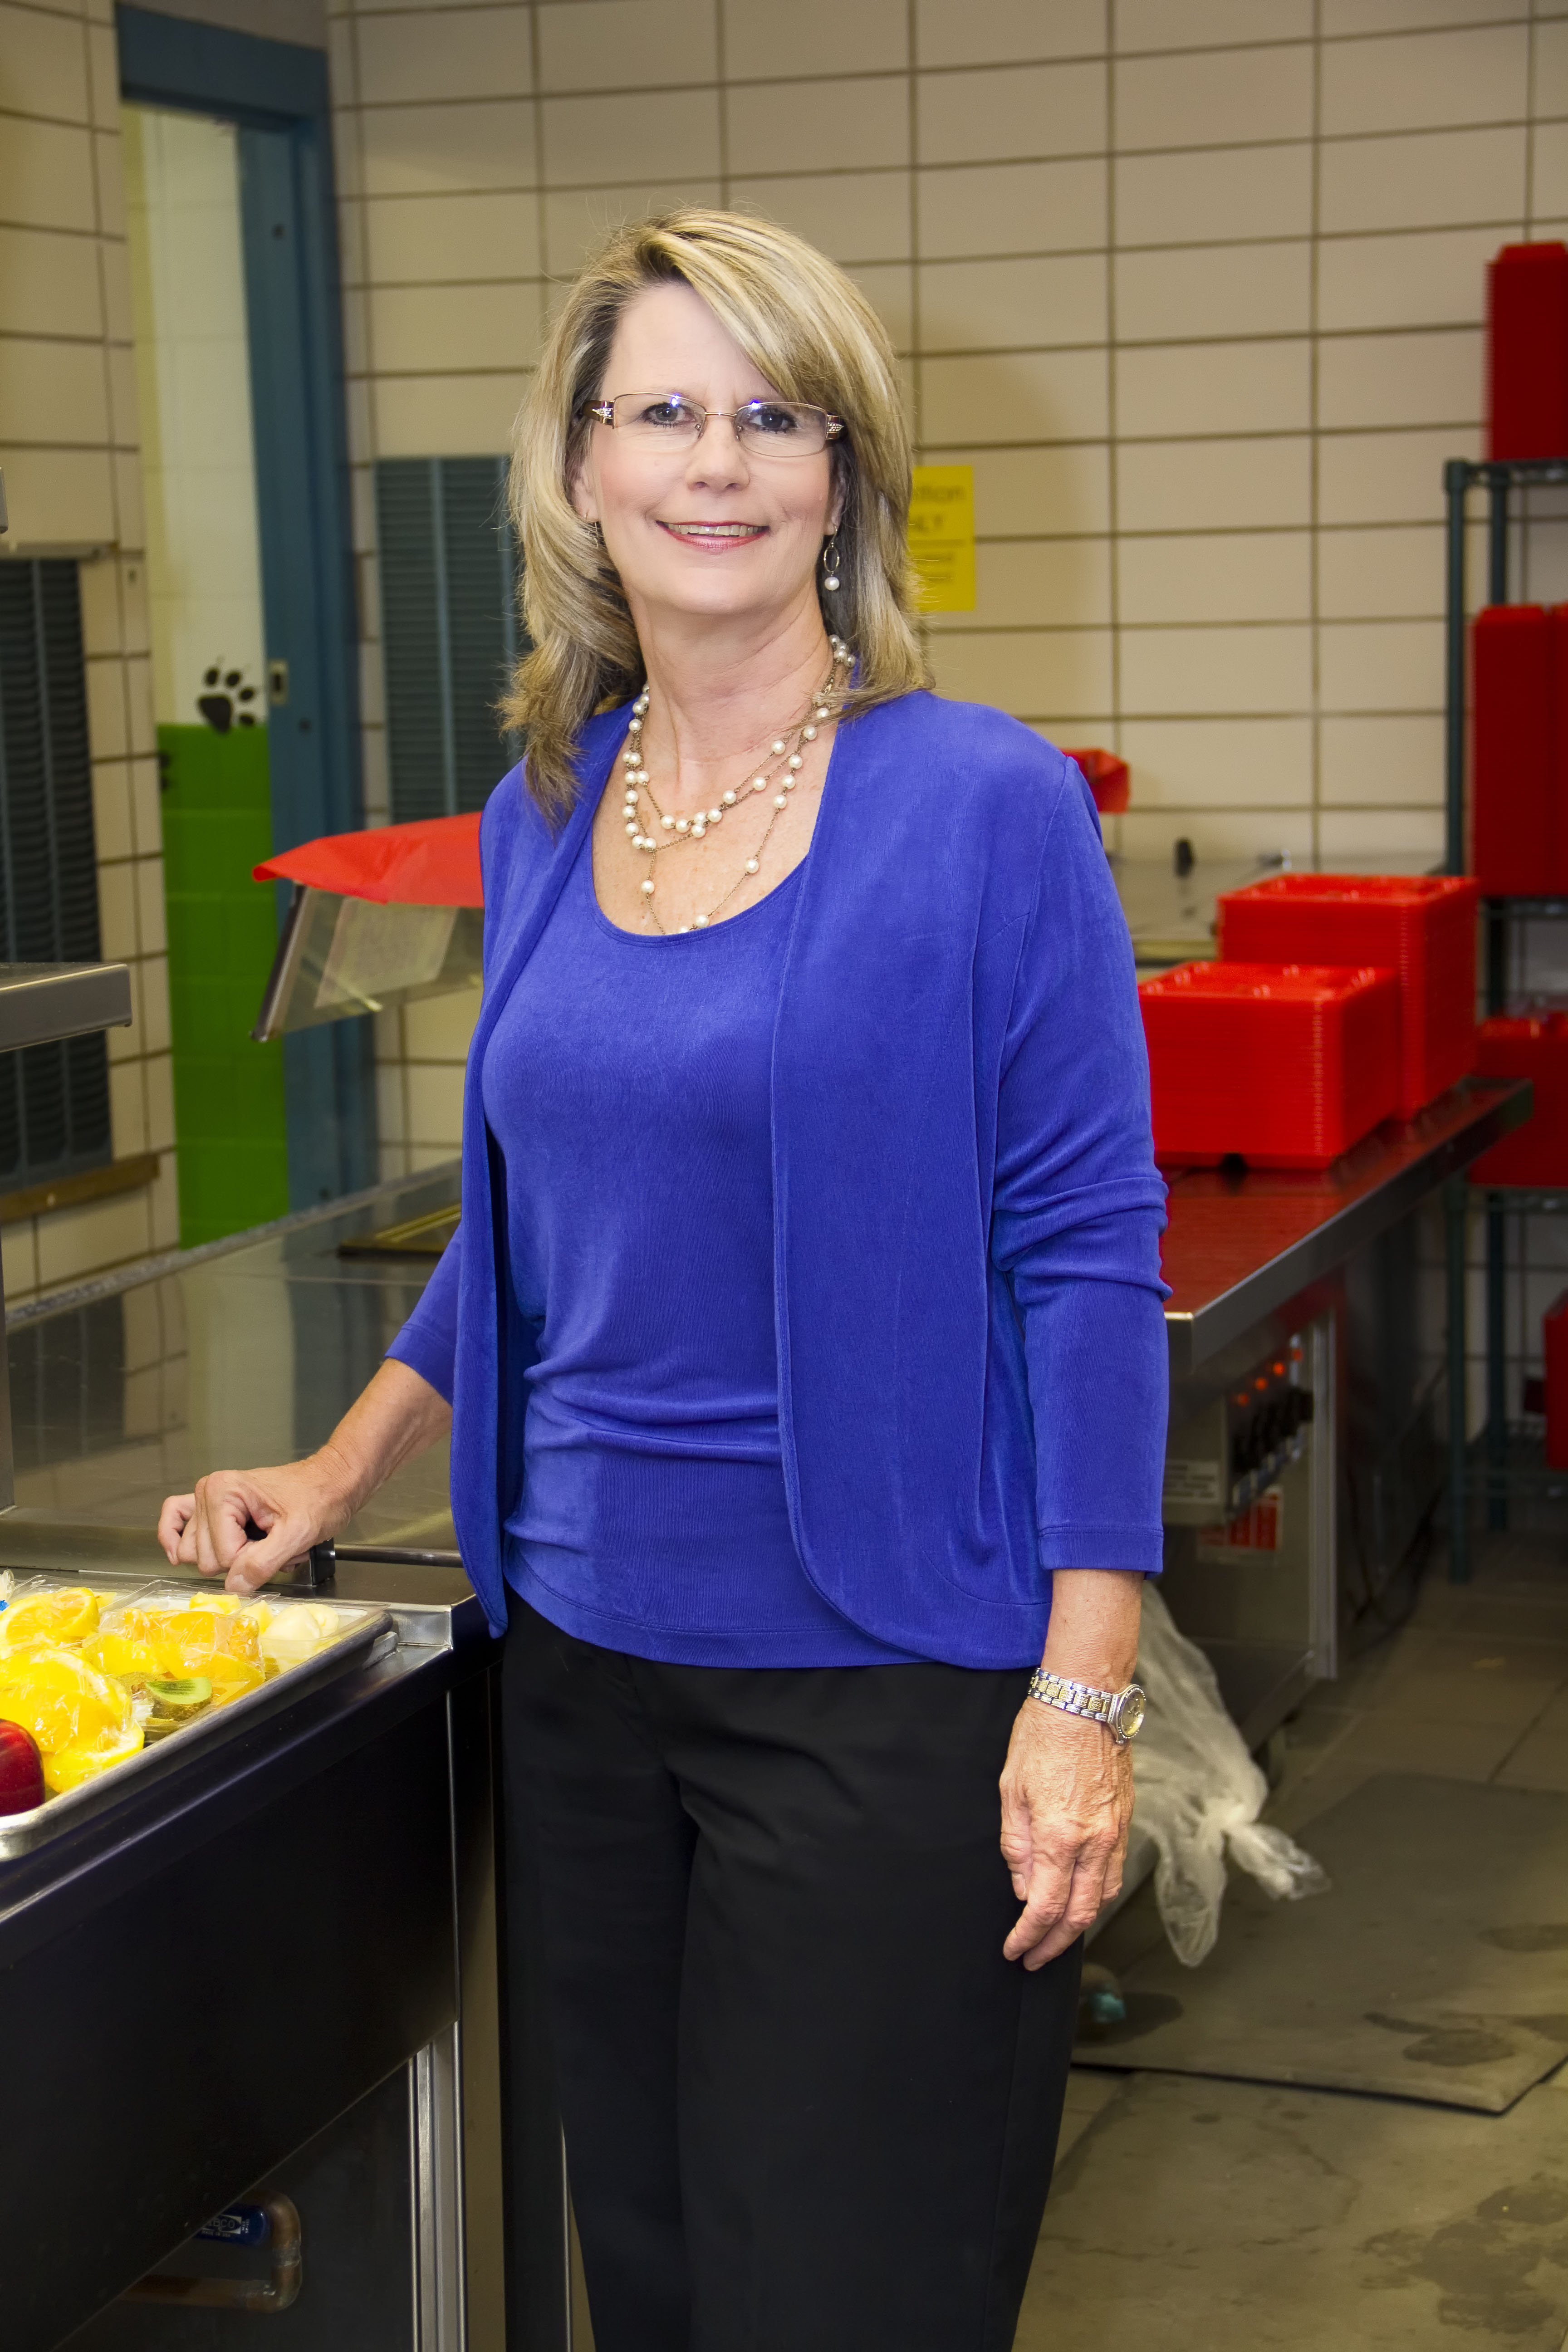 Person of the week: Baker prepares students for knowledge with a good meal